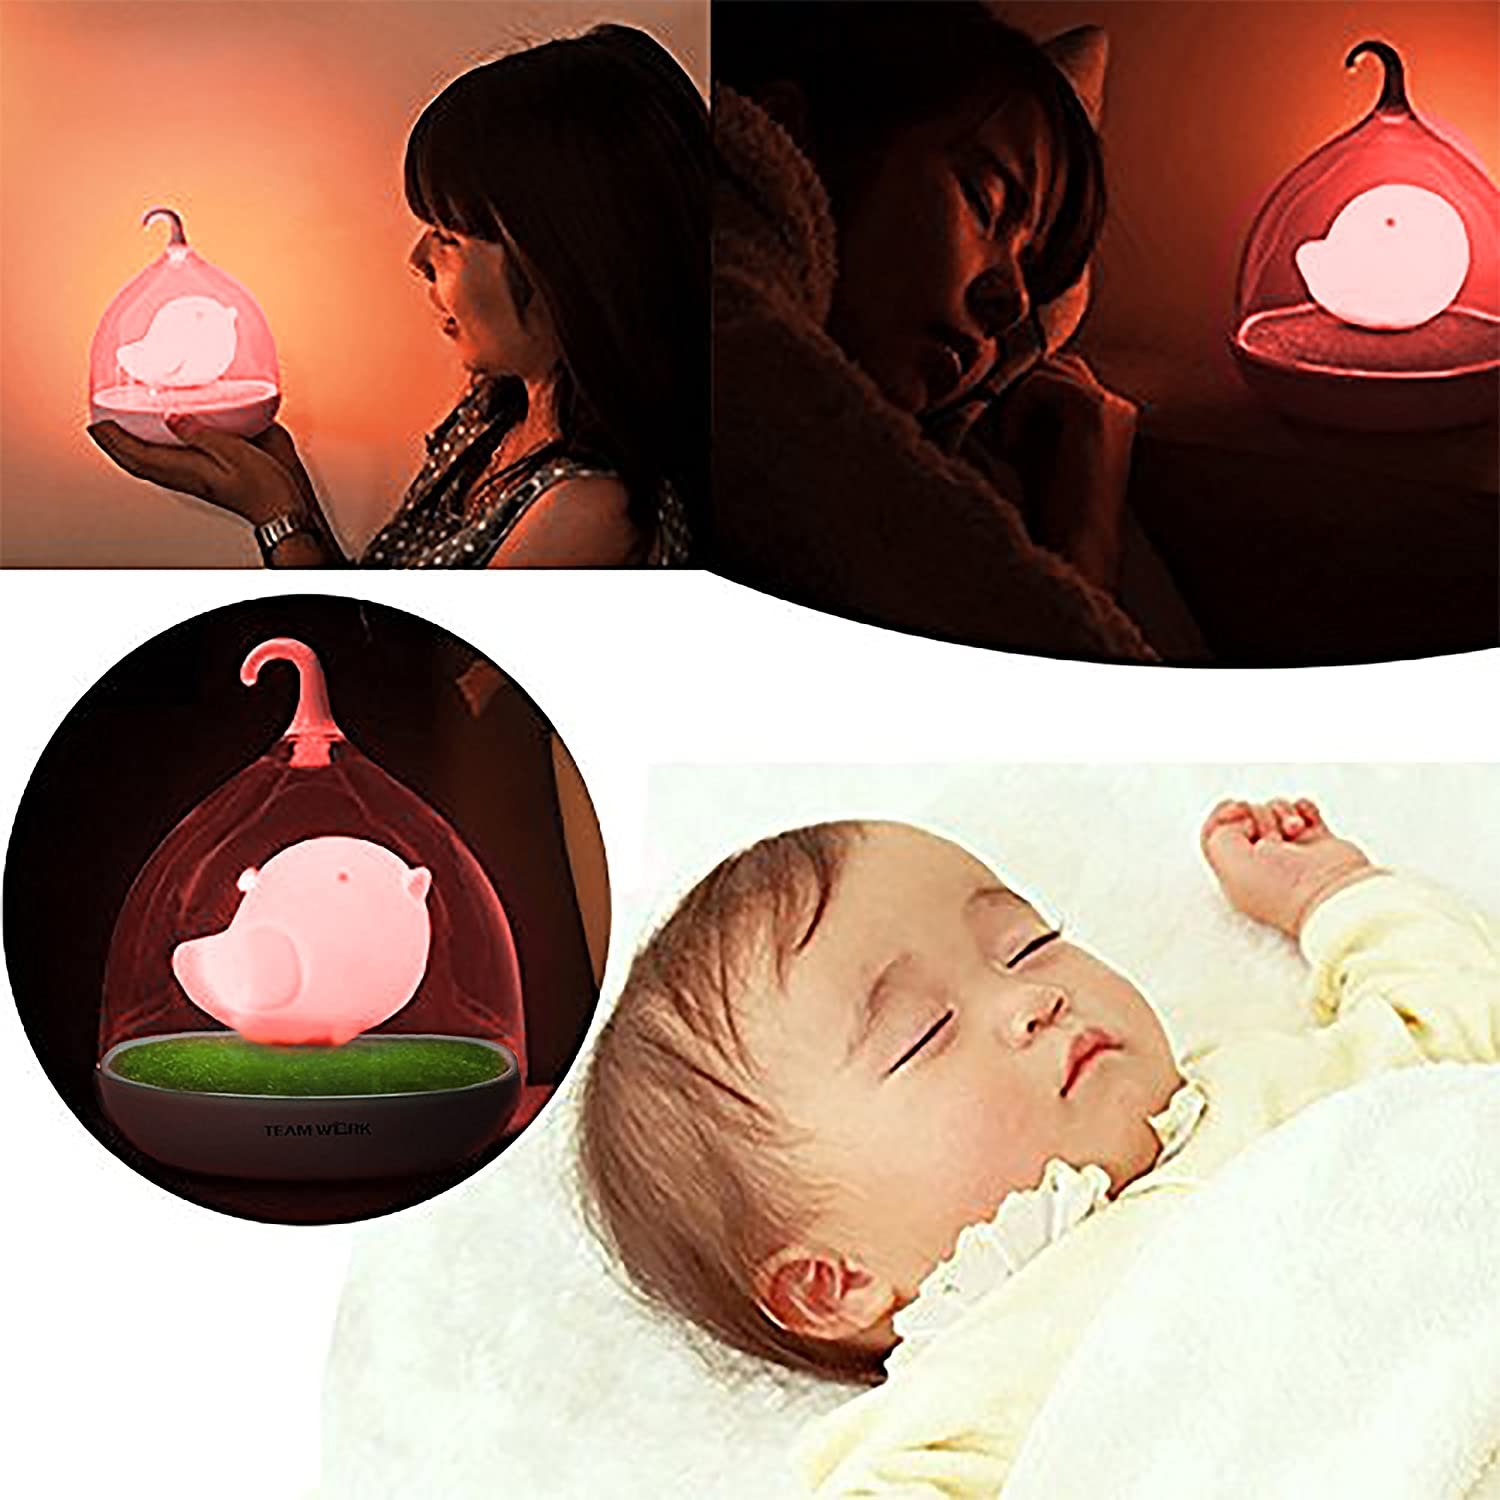 GREAT BABY SHOWER GIFT Soft Light Comforting to Help Your Baby Fall Asleep Faster by Decor Hut DH001-14 LED Pink Bird bight Light Childrens Toddler and Baby Bird Night Lights with Usb Charger Included